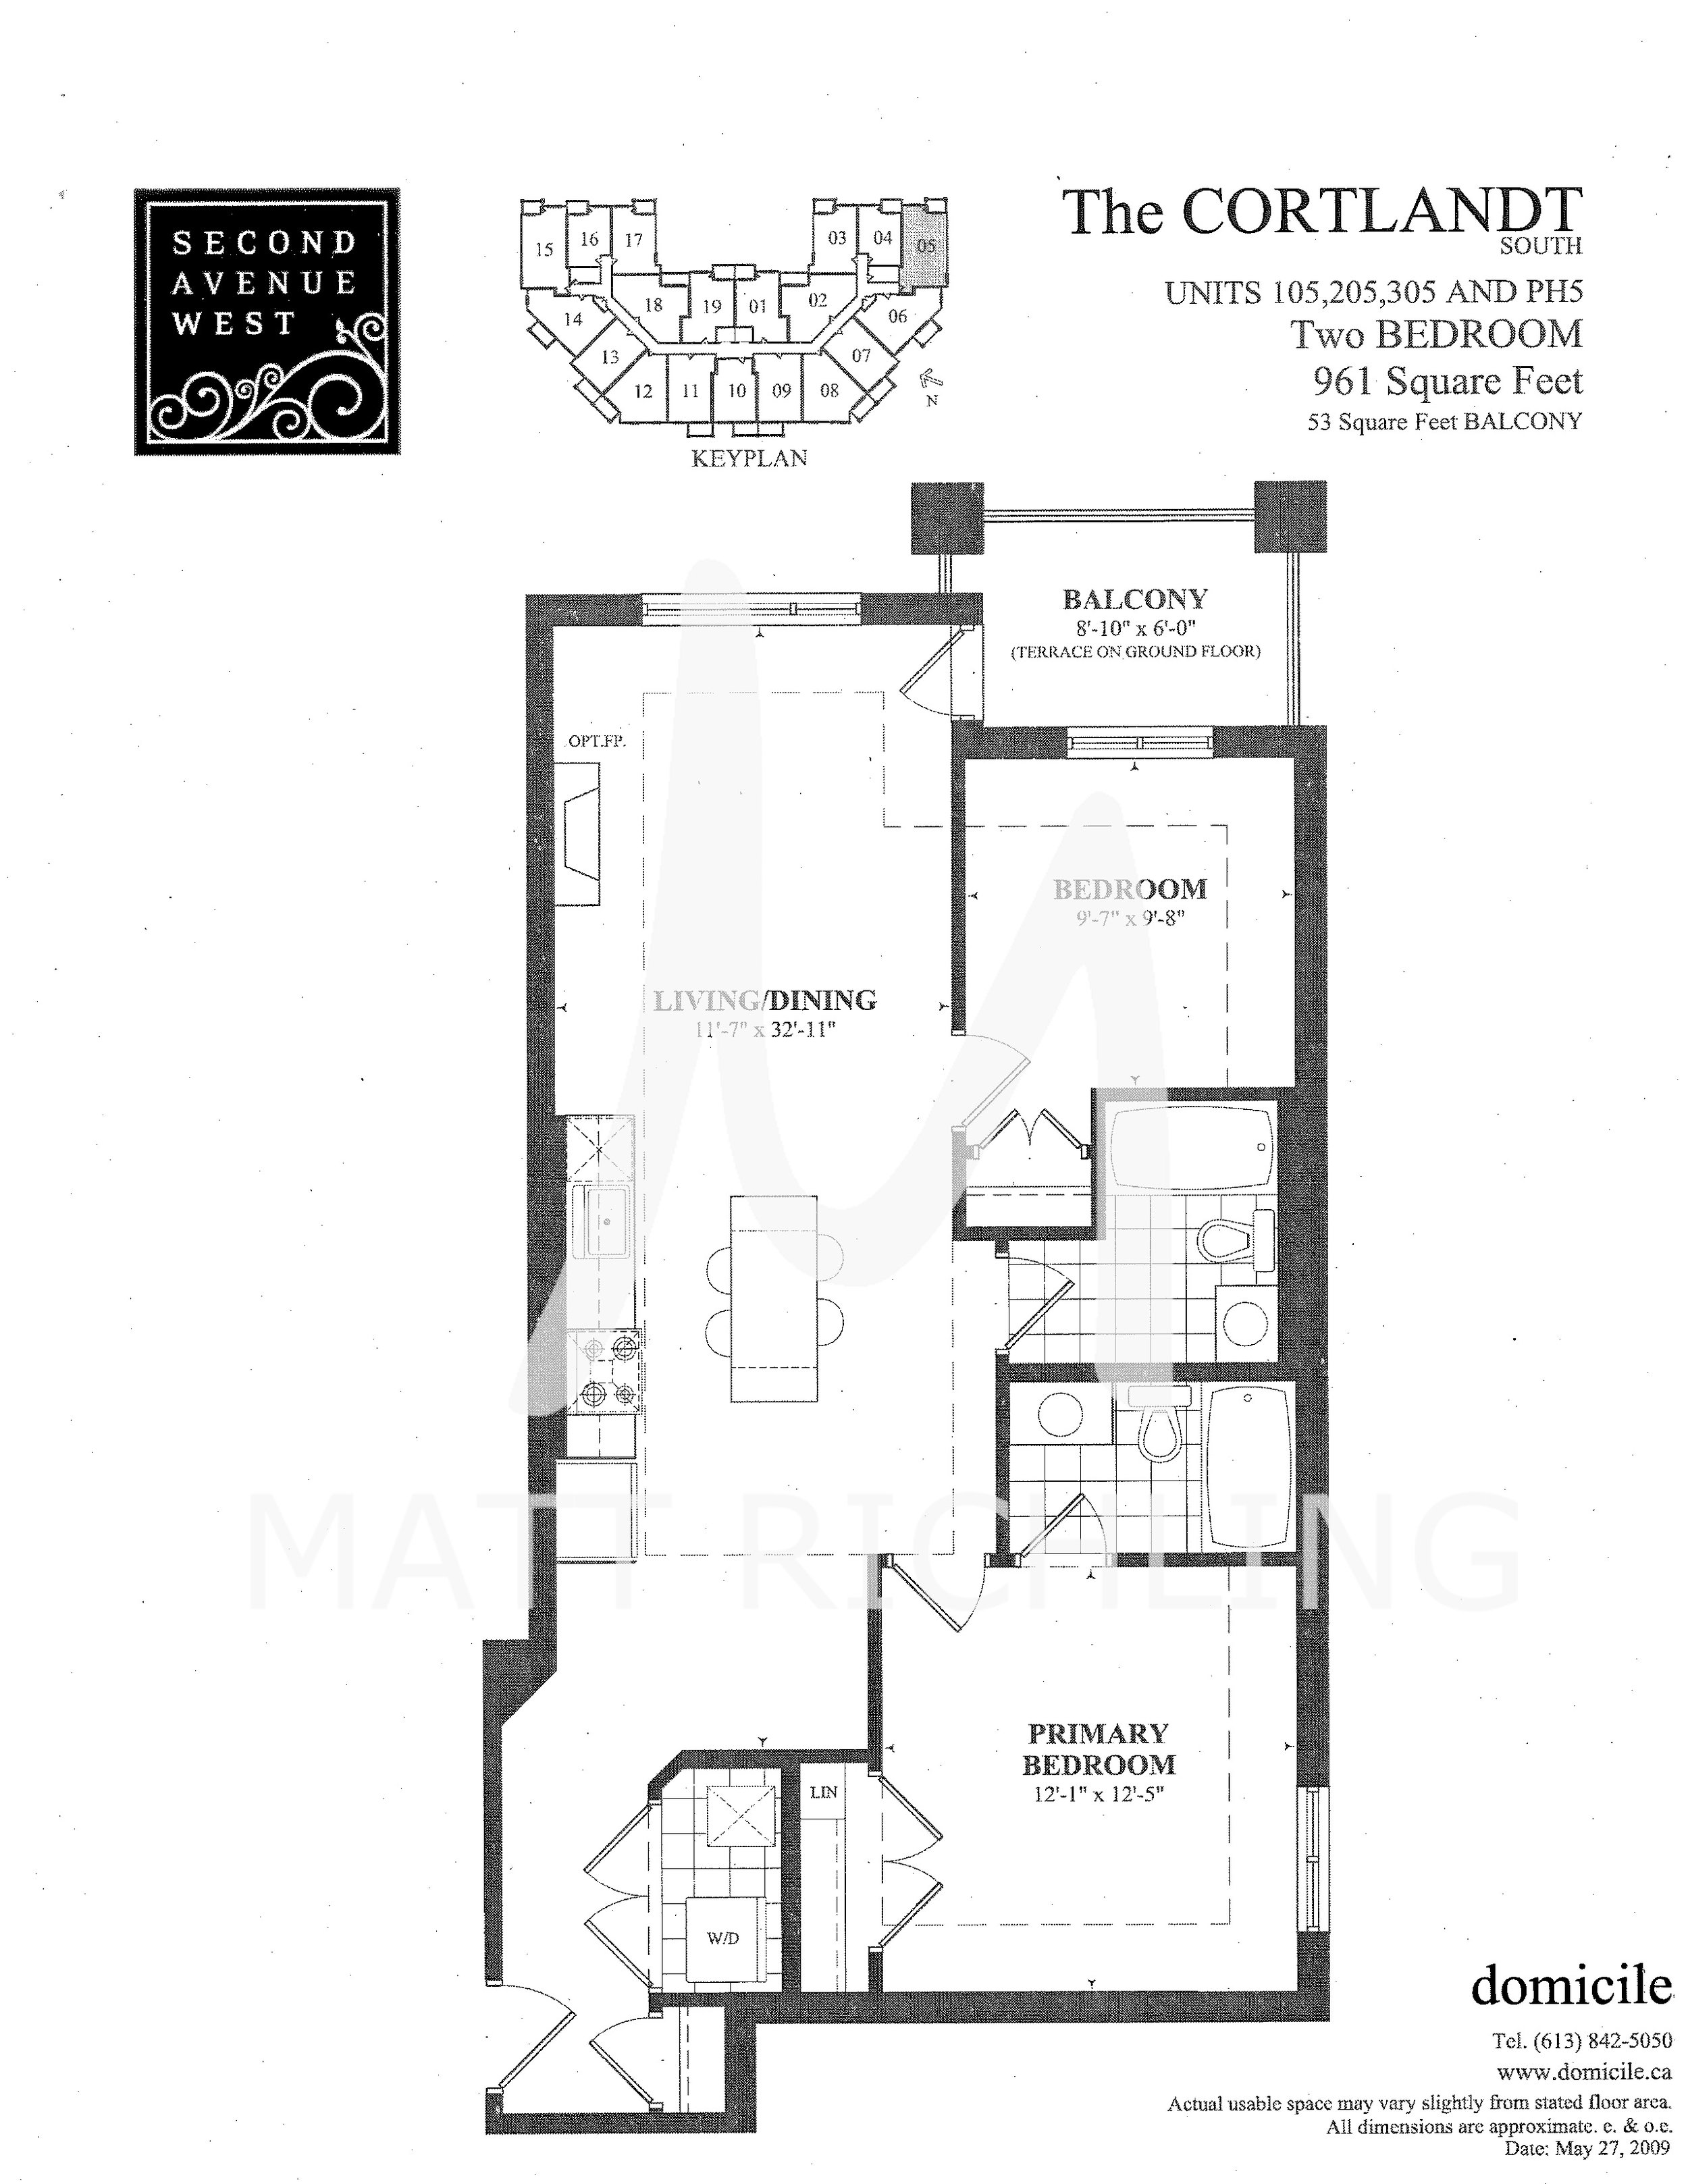 The-Cortlandt---2-Bed---105,205,305,Ph5.jpg